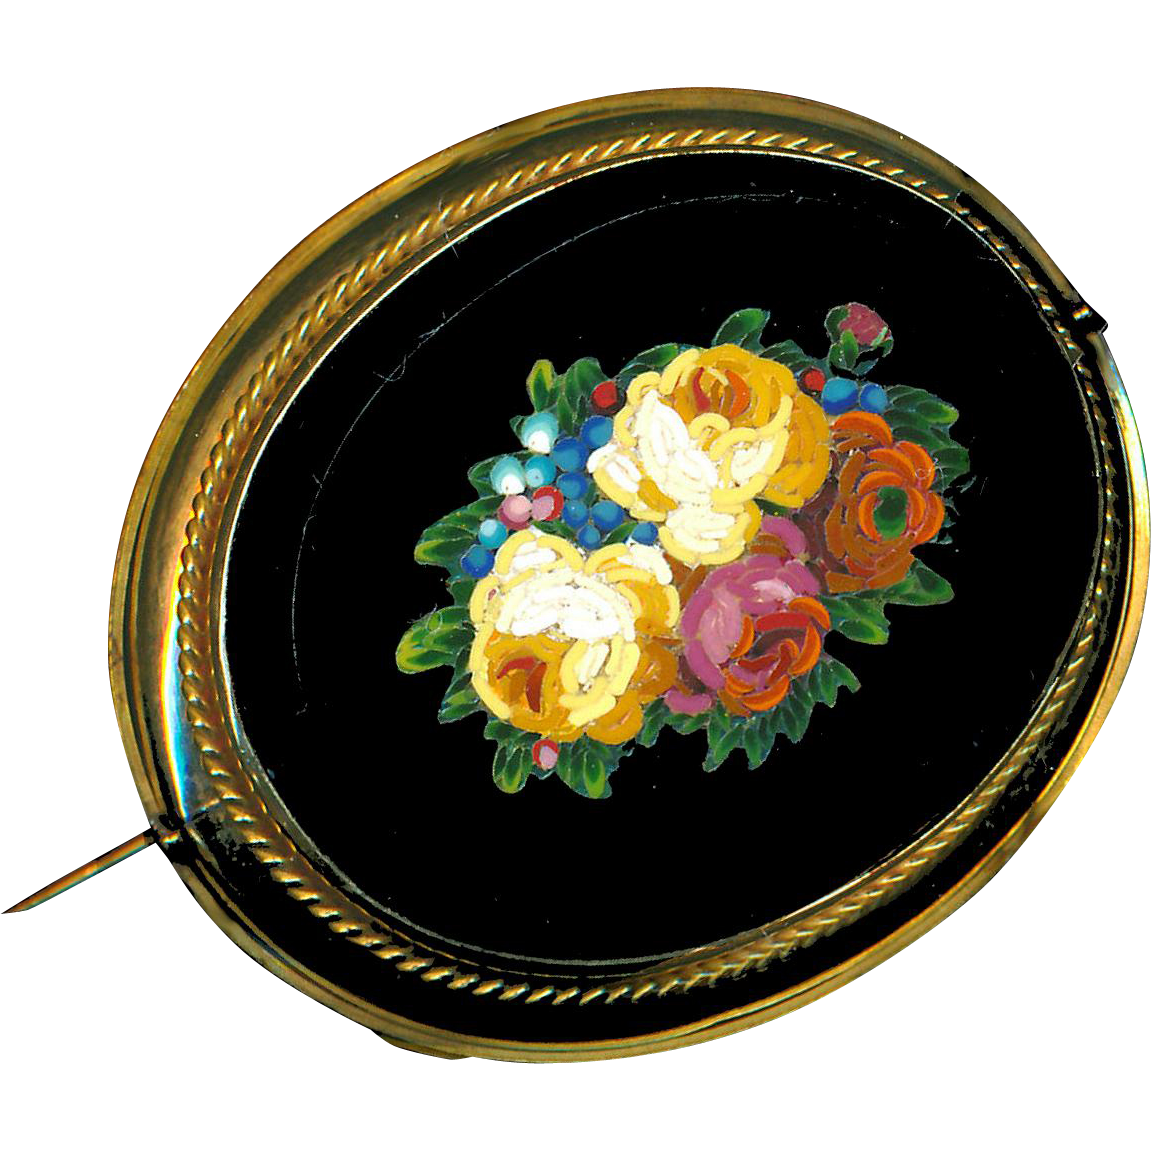 Brooch--Large Very Fine Mid-19th C. Micromosaic Micro Mosaic Yellow Roses Flip-brooch